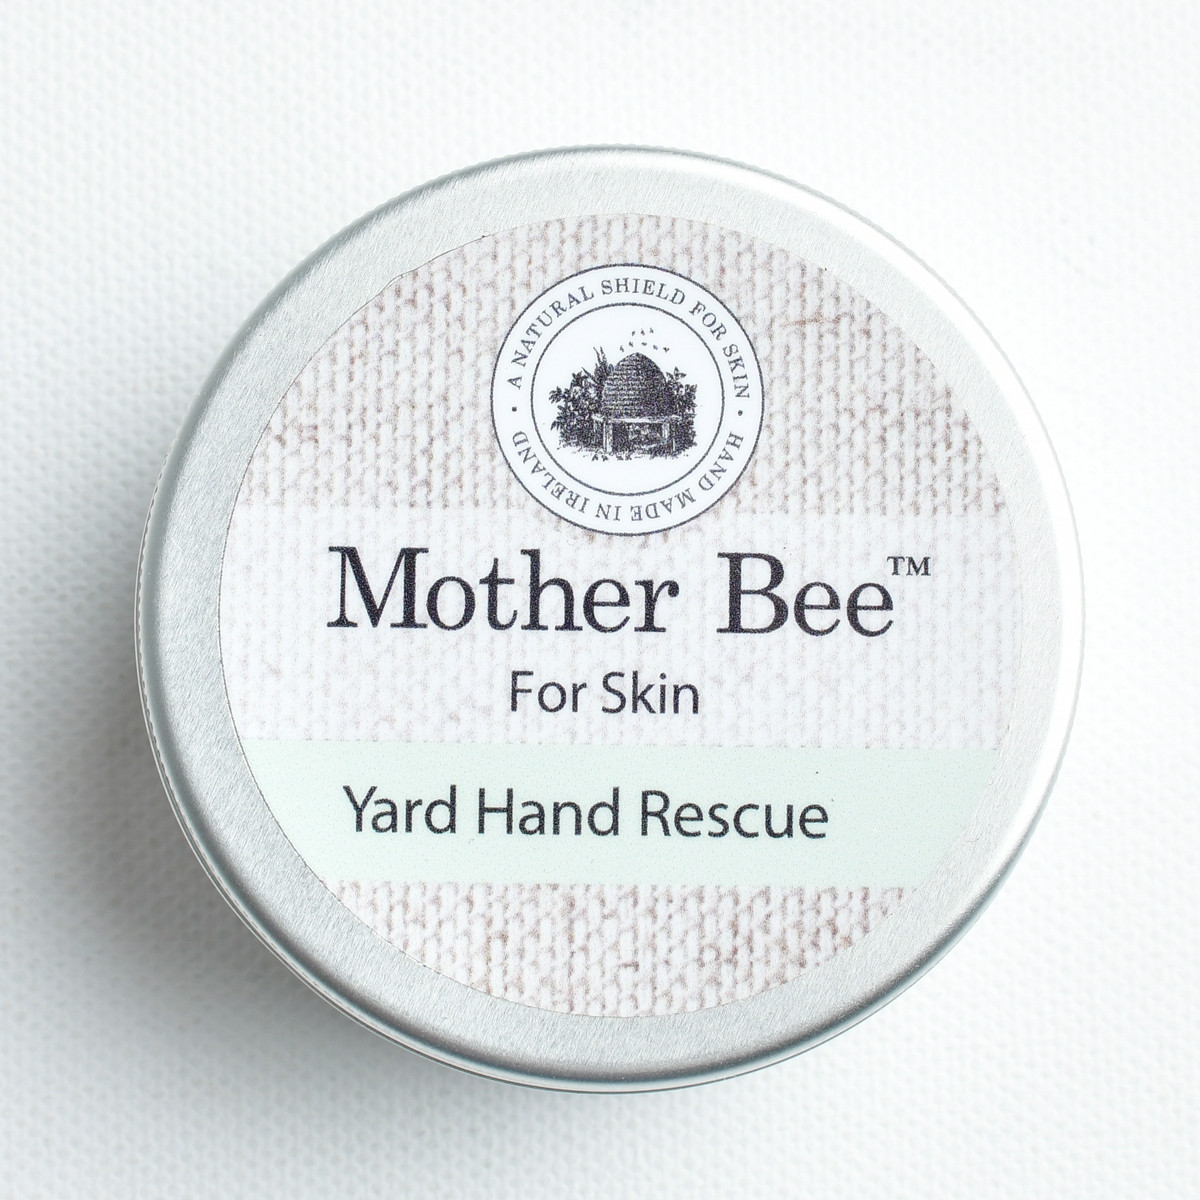 Mother Bee Yard Hand Rescue